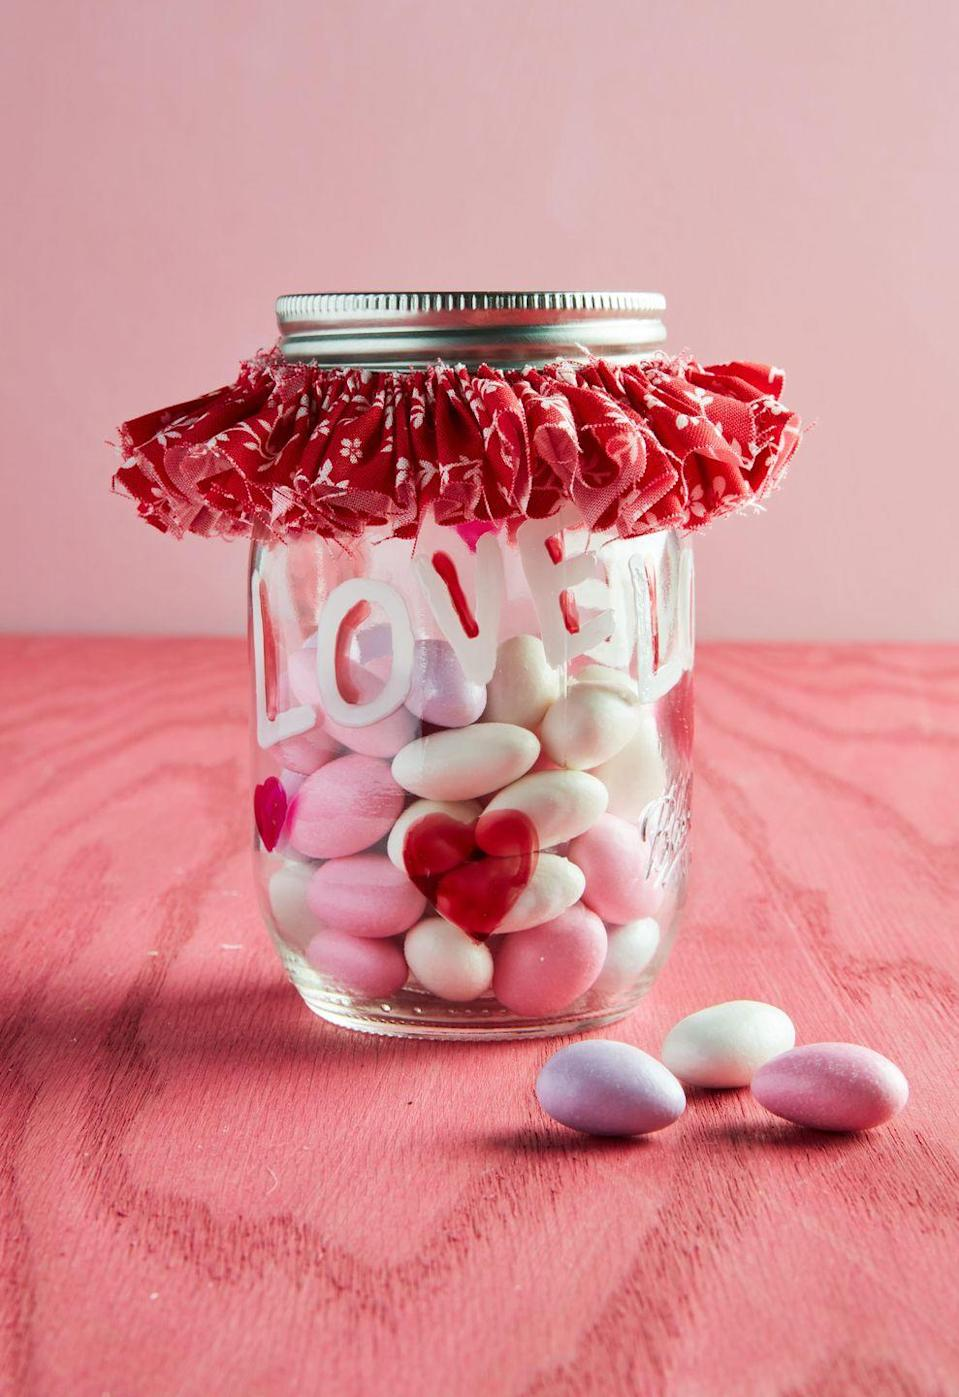 """<p>Transform a plain mason jar into a spectacular candy jar that is guaranteed to spark joy. </p><p><strong>To make:</strong> Write loving words and draw decorations on a mason jar with acrylic markers. To make the collar: Cut a long, 1-inch-wide strip of seasonally appropriate fabric. Using a needle and thread, sew a long, loose running stitch along one edge of the fabric, leaving lengths of thread at either end. Pull thread and fabric to create a ruffle. Use extra thread to tie the ruffle around the top of the jar. </p><p><a class=""""link rapid-noclick-resp"""" href=""""https://www.amazon.com/Acrylic-Painting-Ceramic-Porcelain-Permanent/dp/B07TTW3KLV/ref=sr_1_7?tag=syn-yahoo-20&ascsubtag=%5Bartid%7C10050.g.93%5Bsrc%7Cyahoo-us"""" rel=""""nofollow noopener"""" target=""""_blank"""" data-ylk=""""slk:SHOP PENS"""">SHOP PENS</a></p>"""